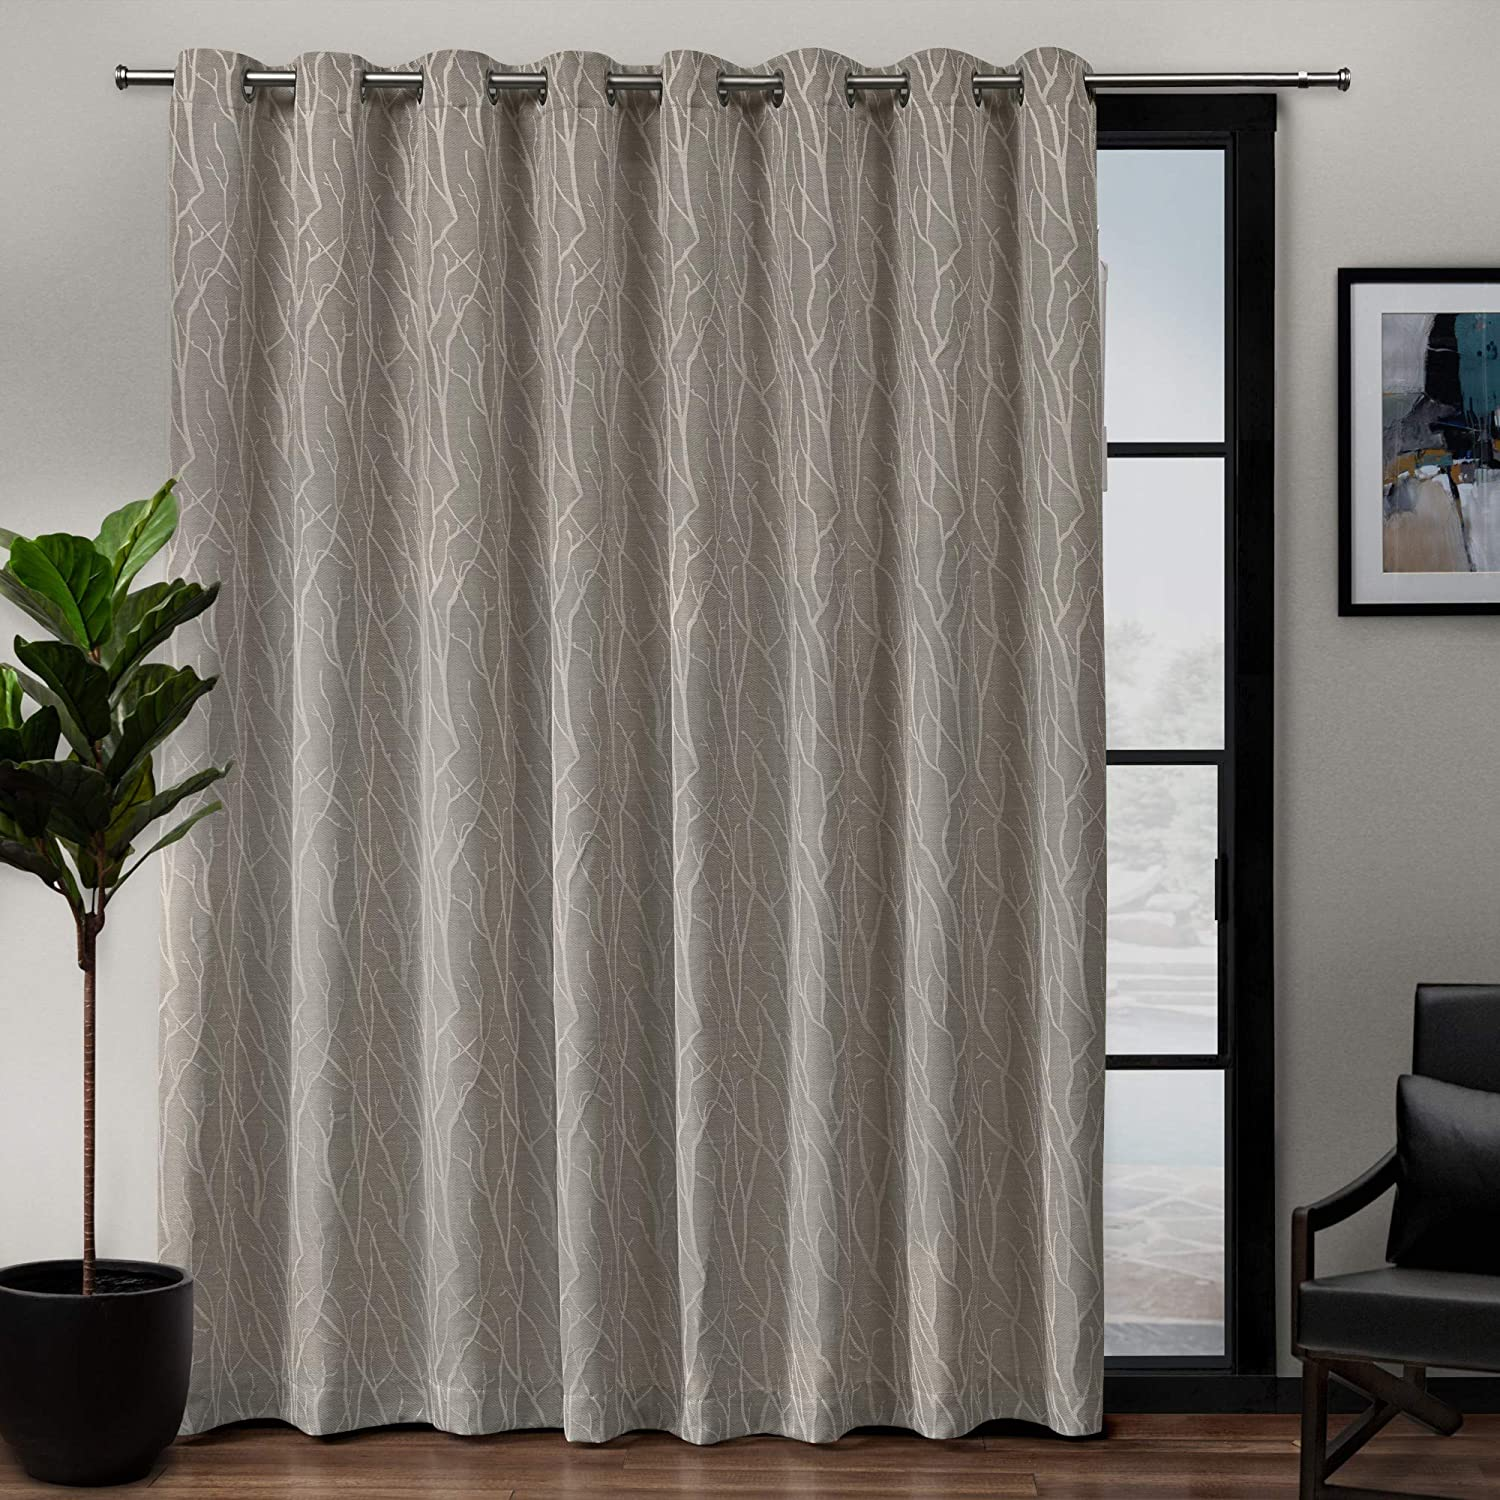 Exclusive Home Forest Hill Patio Woven Blackout Grommet Top Single Curtain Panel, Ash Grey, 108X84